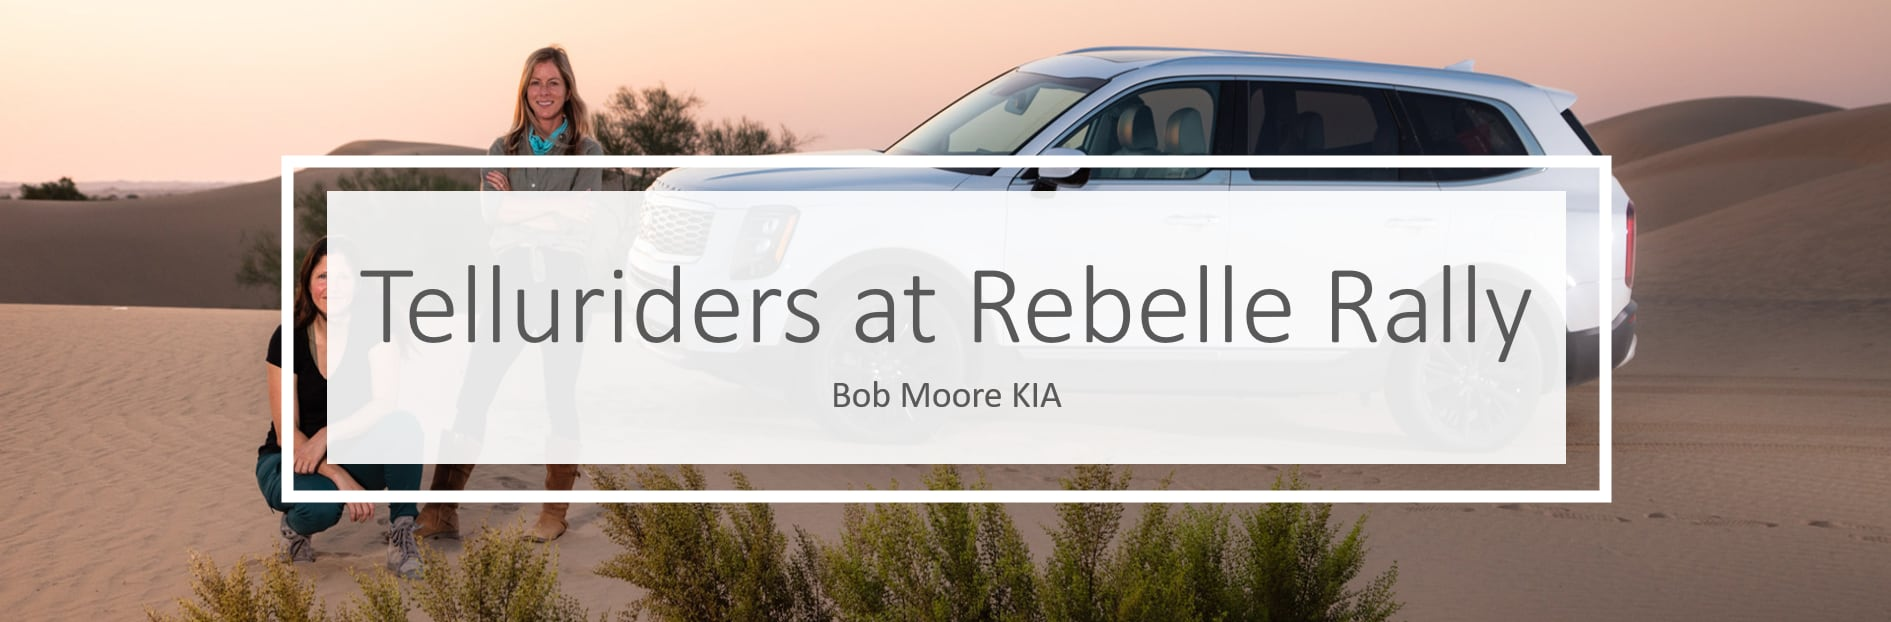 2020 Telluriders at Rebelle rally